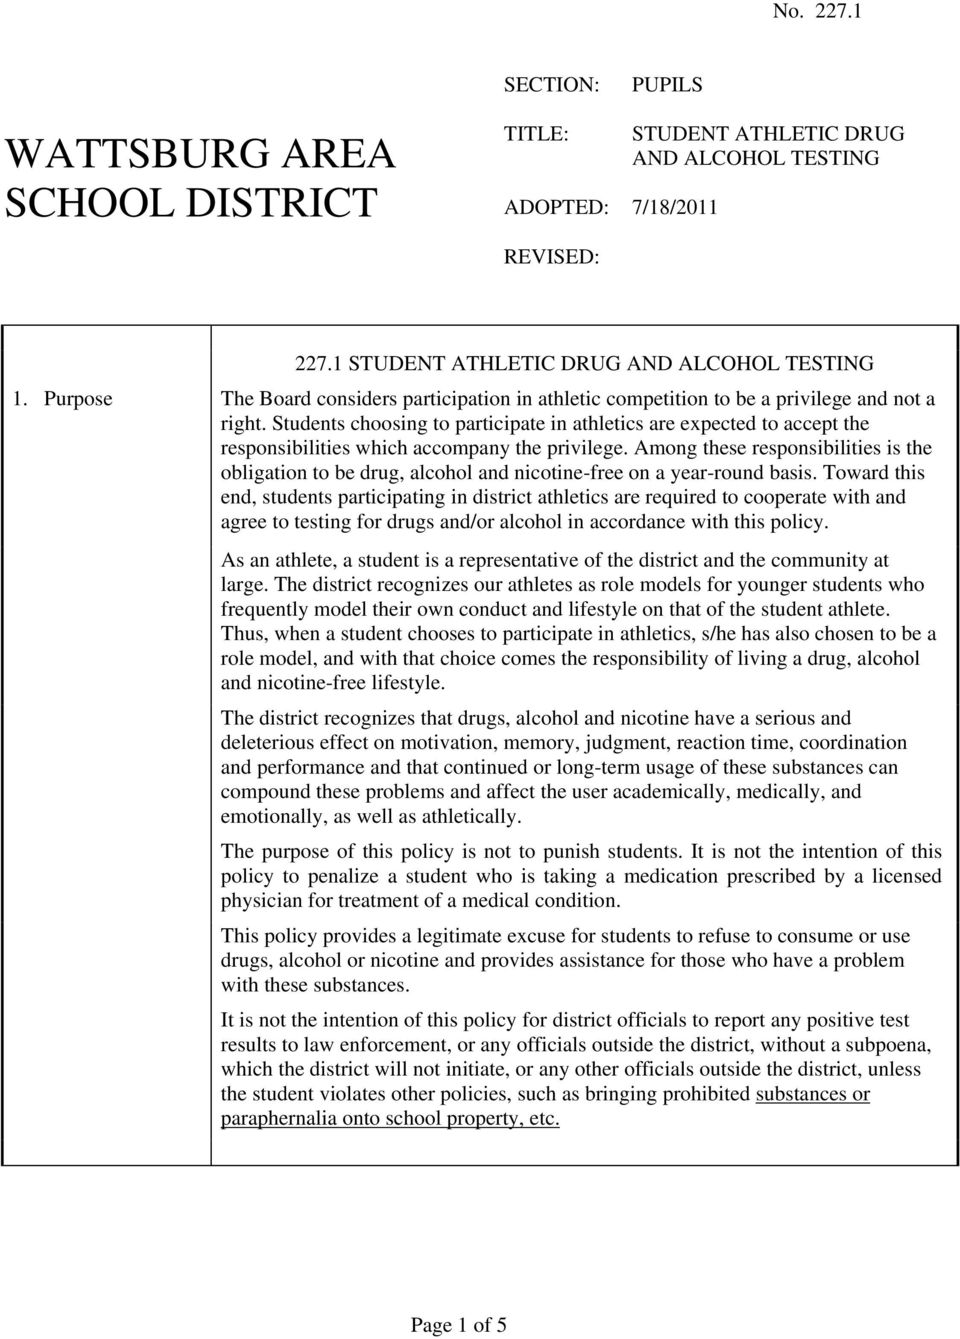 Students choosing to participate in athletics are expected to accept the responsibilities which accompany the privilege.